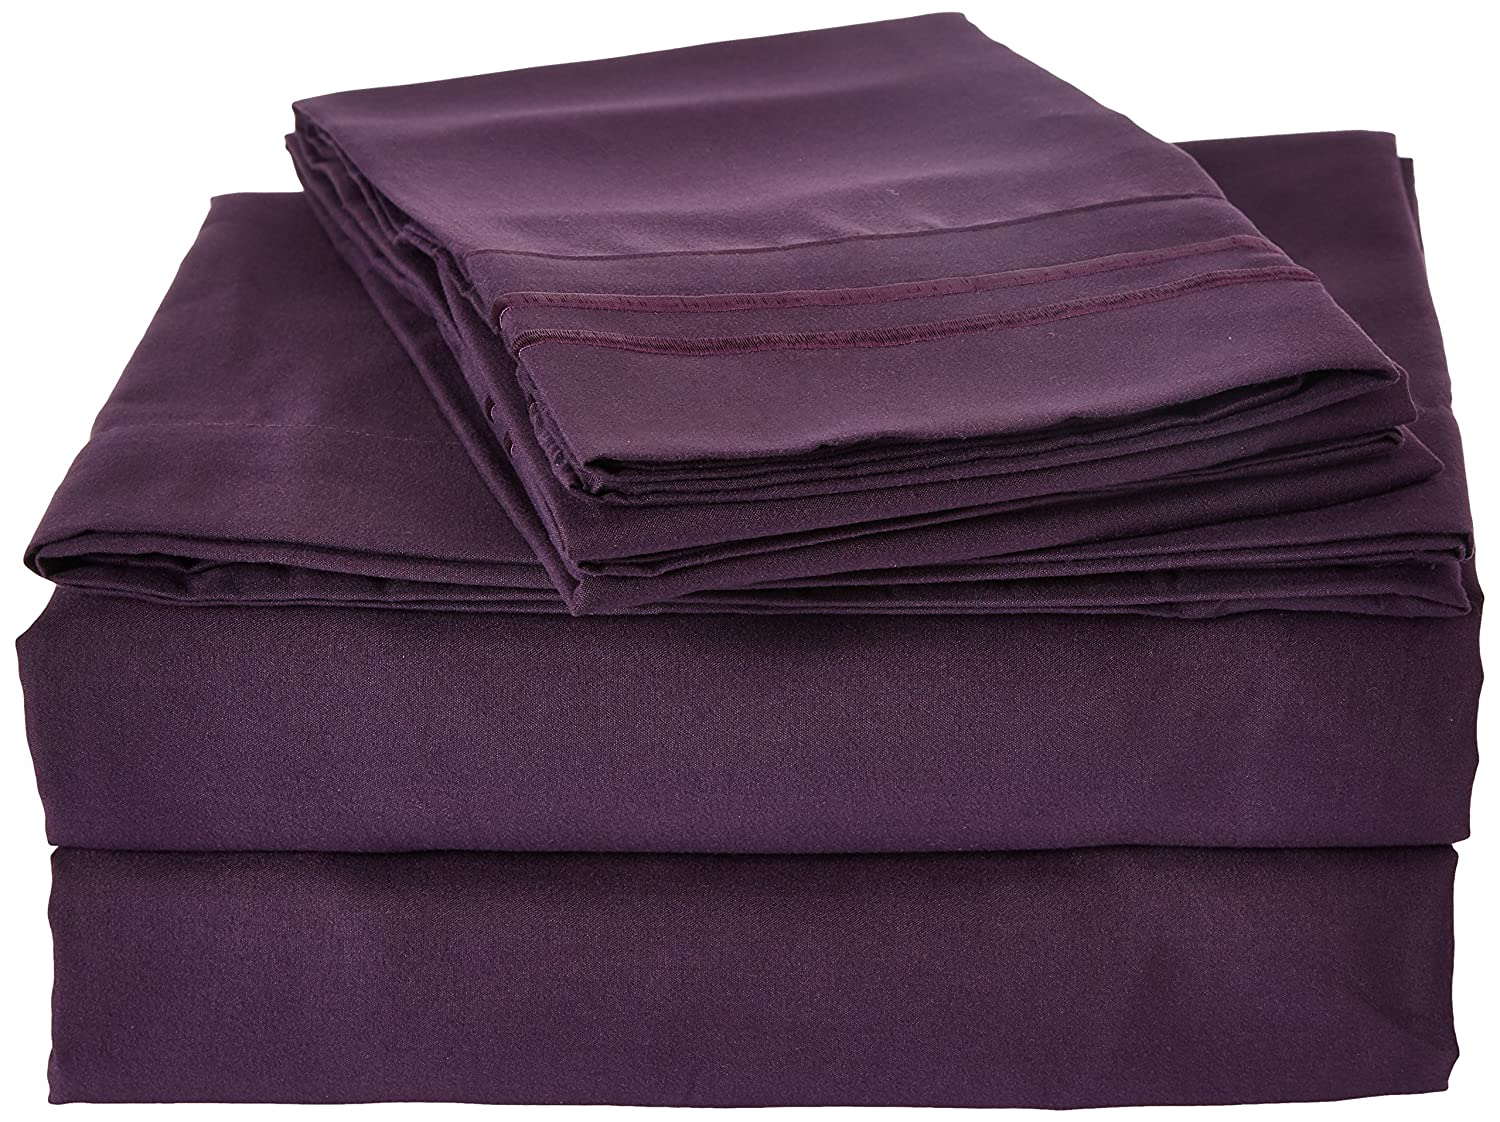 Clara Clark 4 Piece 1800 Series Premier Sheet Set, Queen, Purple